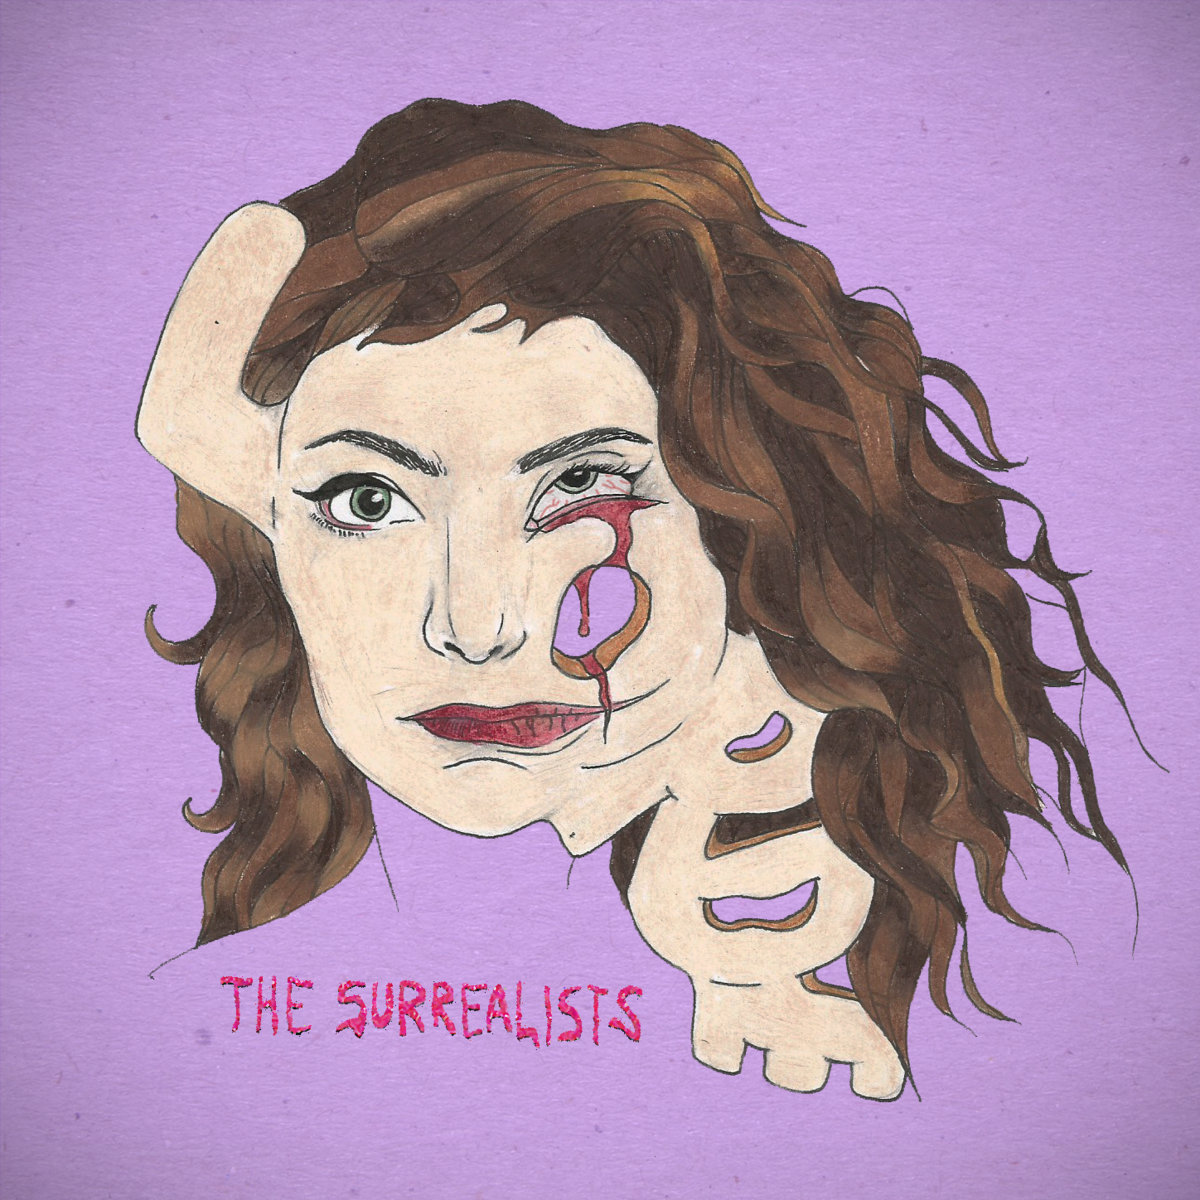 Tennis Court Lorde Cover The Surrealists